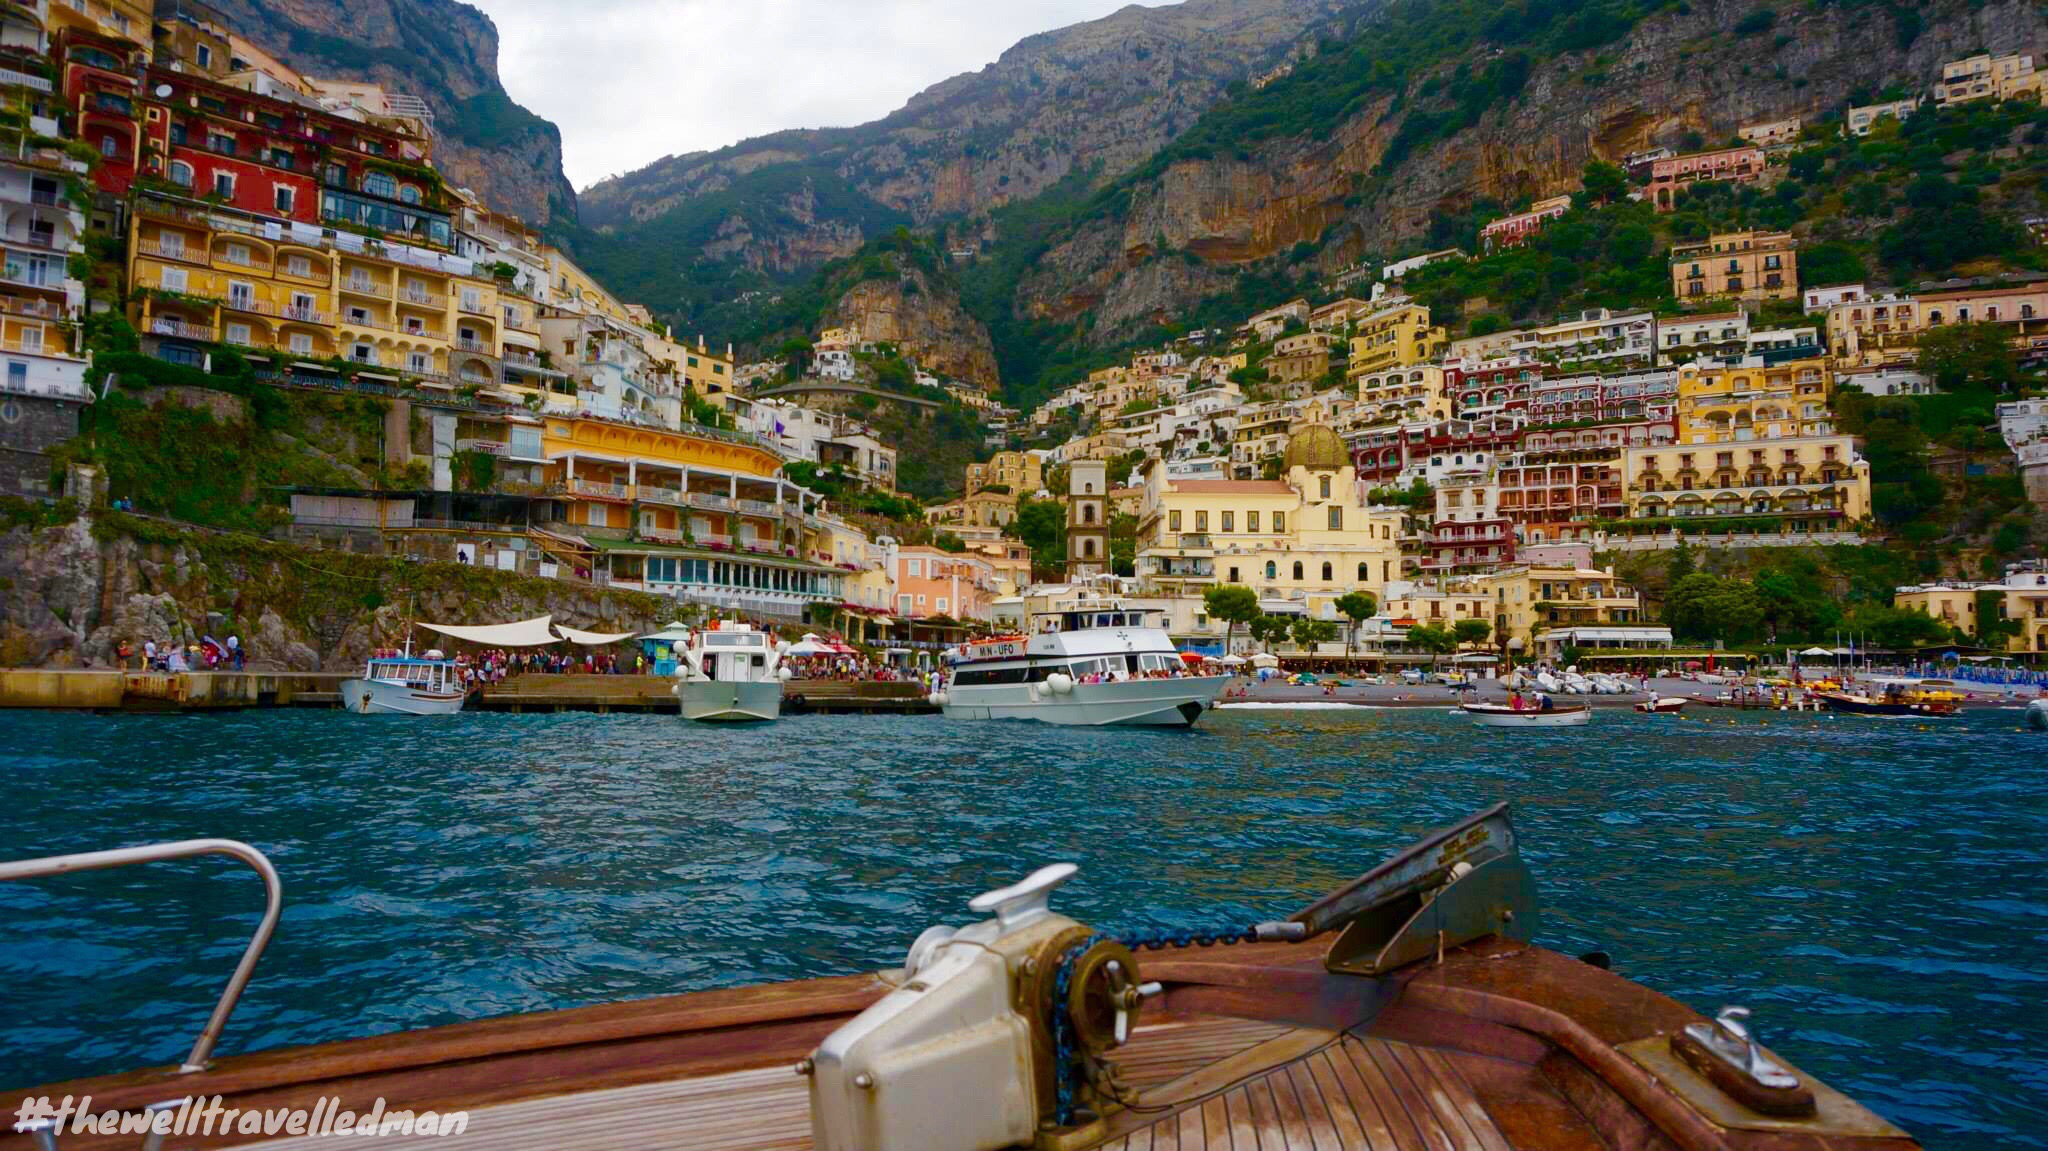 Amalfi Coast Italy In Pictures Thewelltravelledman